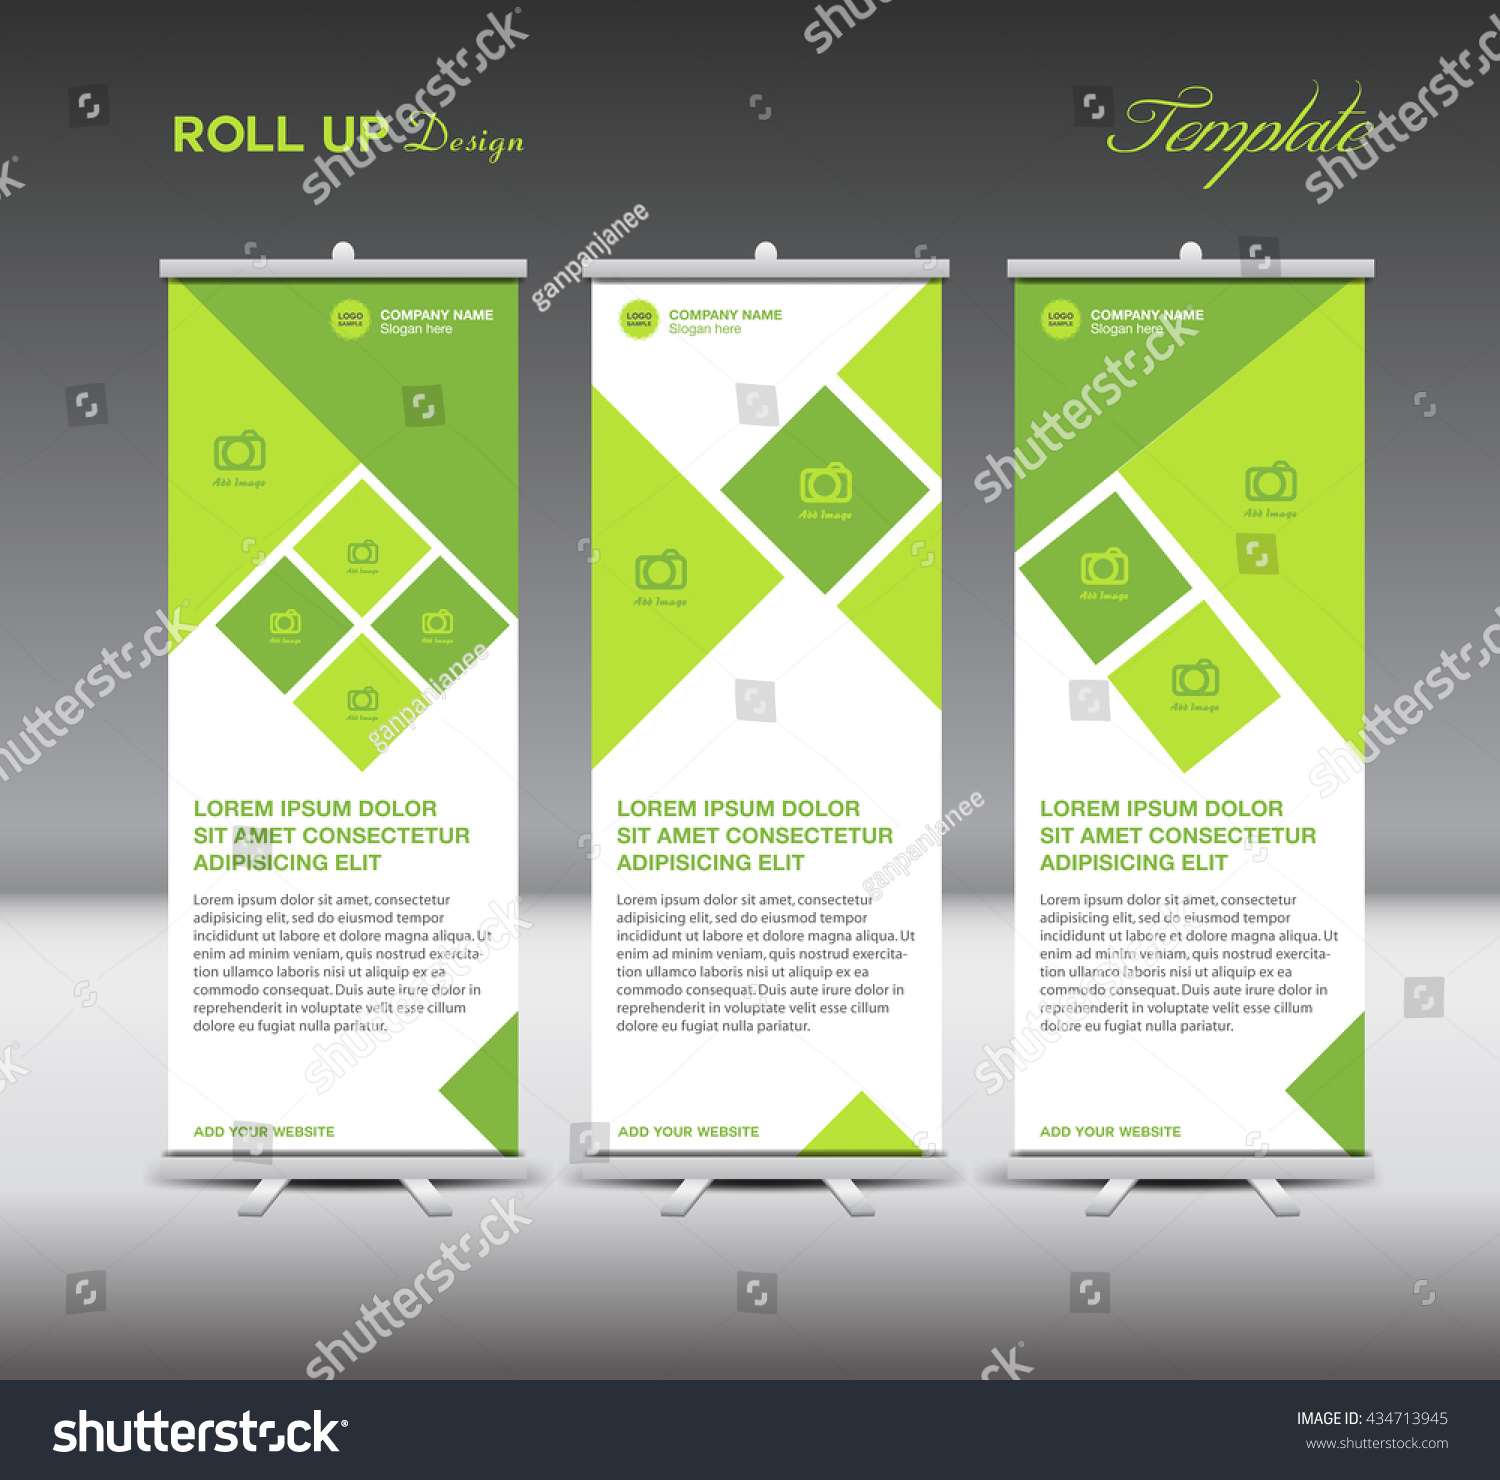 green roll up banner template display advertisement vector green roll up banner template display advertisement vector illustration flyer design